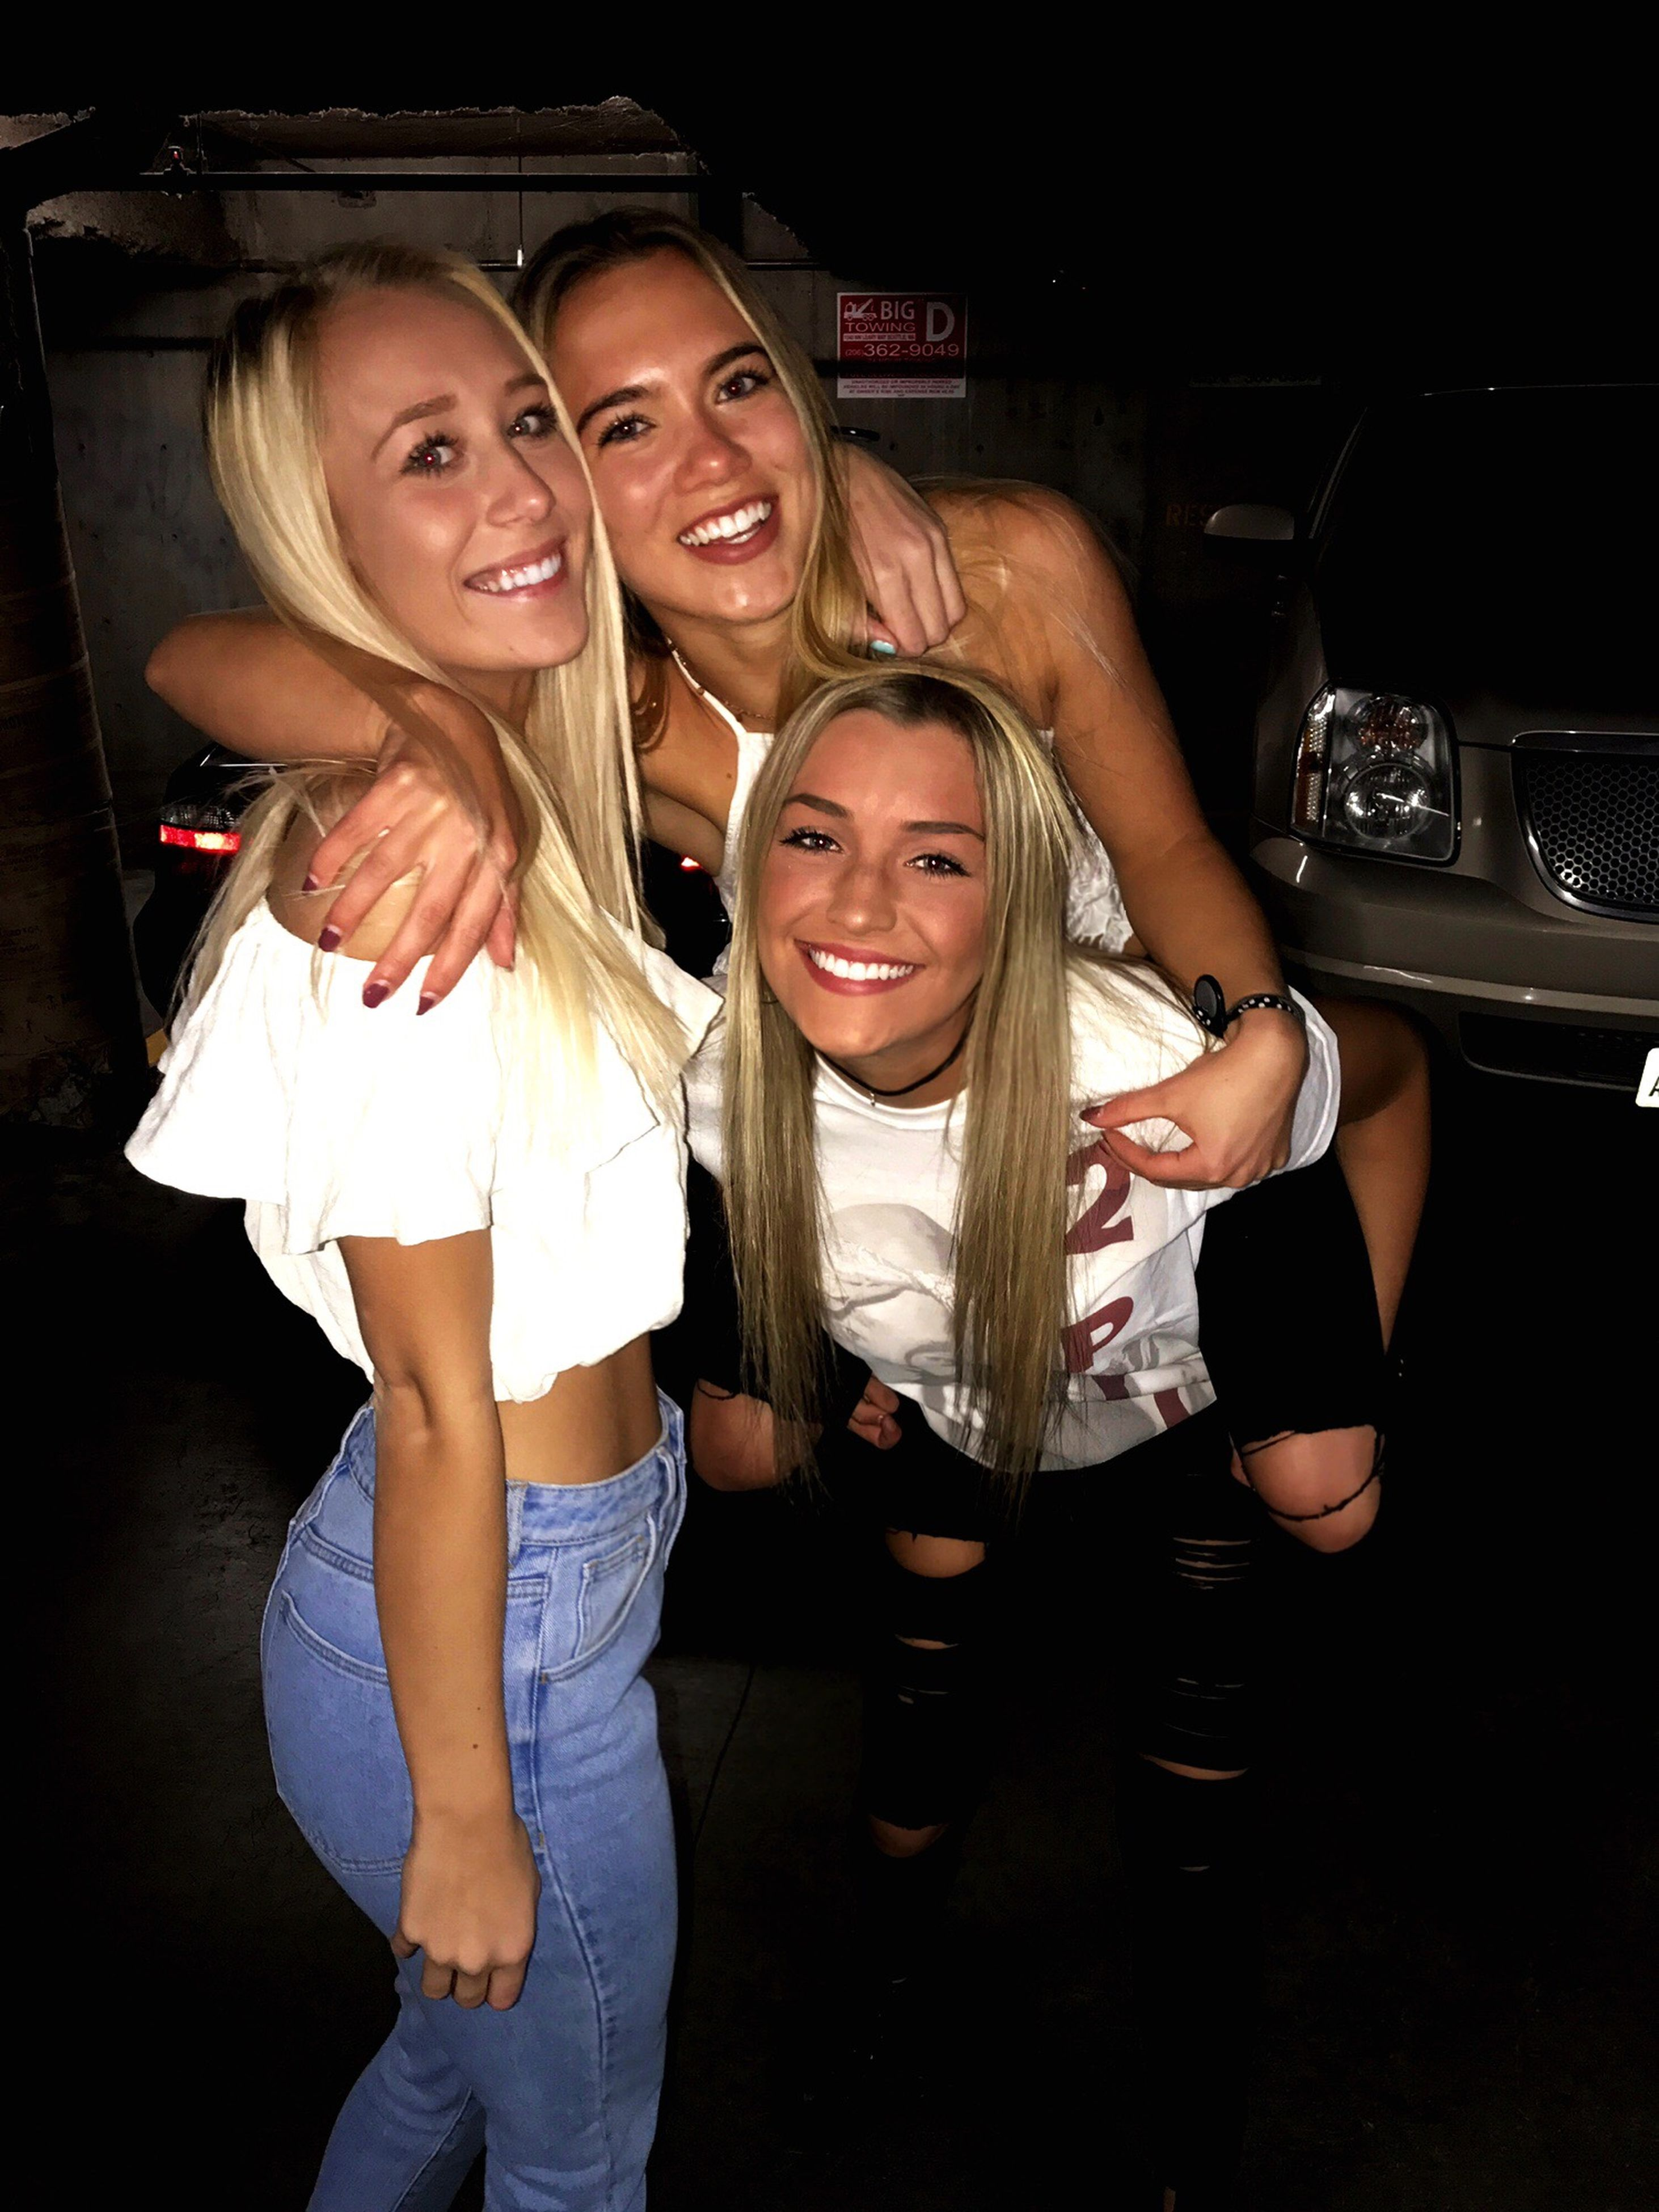 smiling, nightlife, cheerful, portrait, selfie, friendship, happiness, fun, togetherness, night, looking at camera, adults only, people, women, competition, adult, nightclub, young adult, human arm, young women, indoors, happy hour, millionnaire, red carpet event